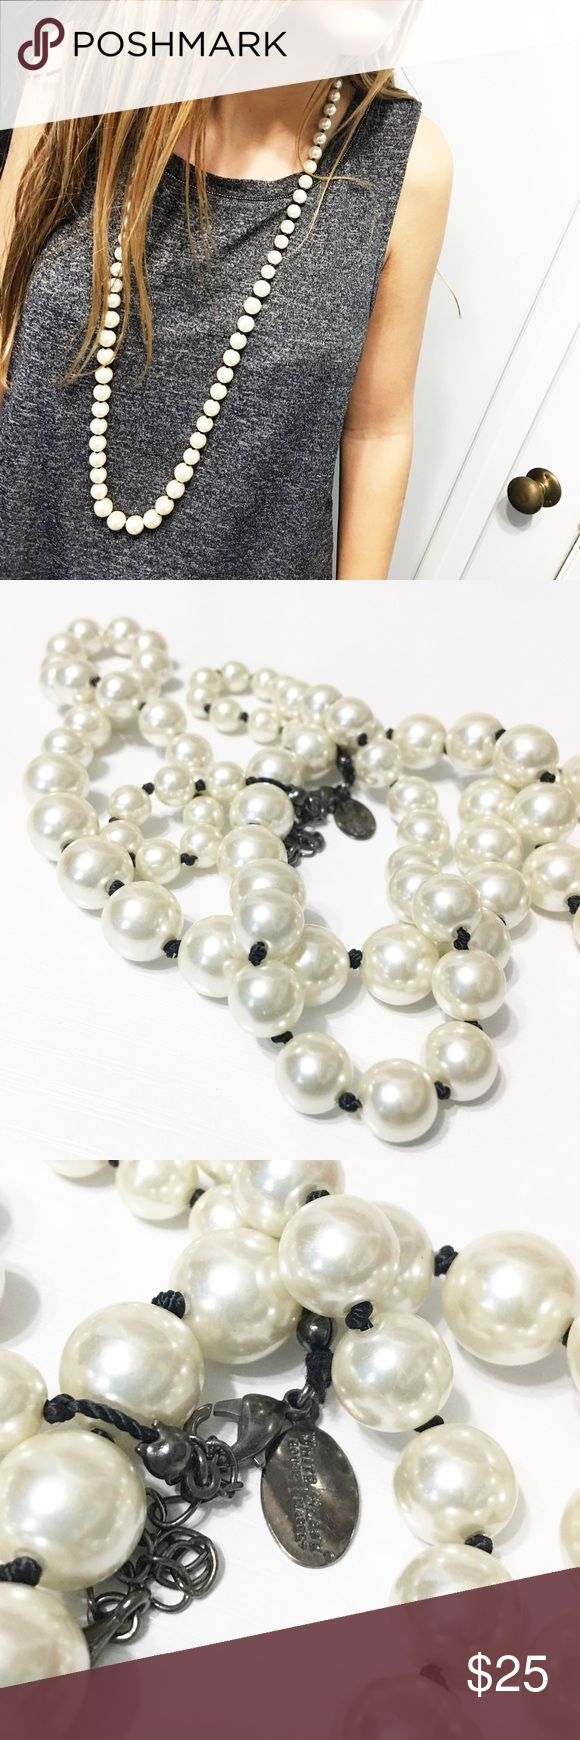 """White House Black Market Long Pearl Necklace Tie it in a knot, double it up, or wear it plain, this faux pearl necklace from WHBM is the ultimate classy staple. Larger pearls at the bottom get smaller as they reach the clasp. 36"""" long and in fabulous like-new condition. Questions? Please ask. Sorry, no trades. Bundle for a discount! White House Black Market Jewelry Necklaces"""